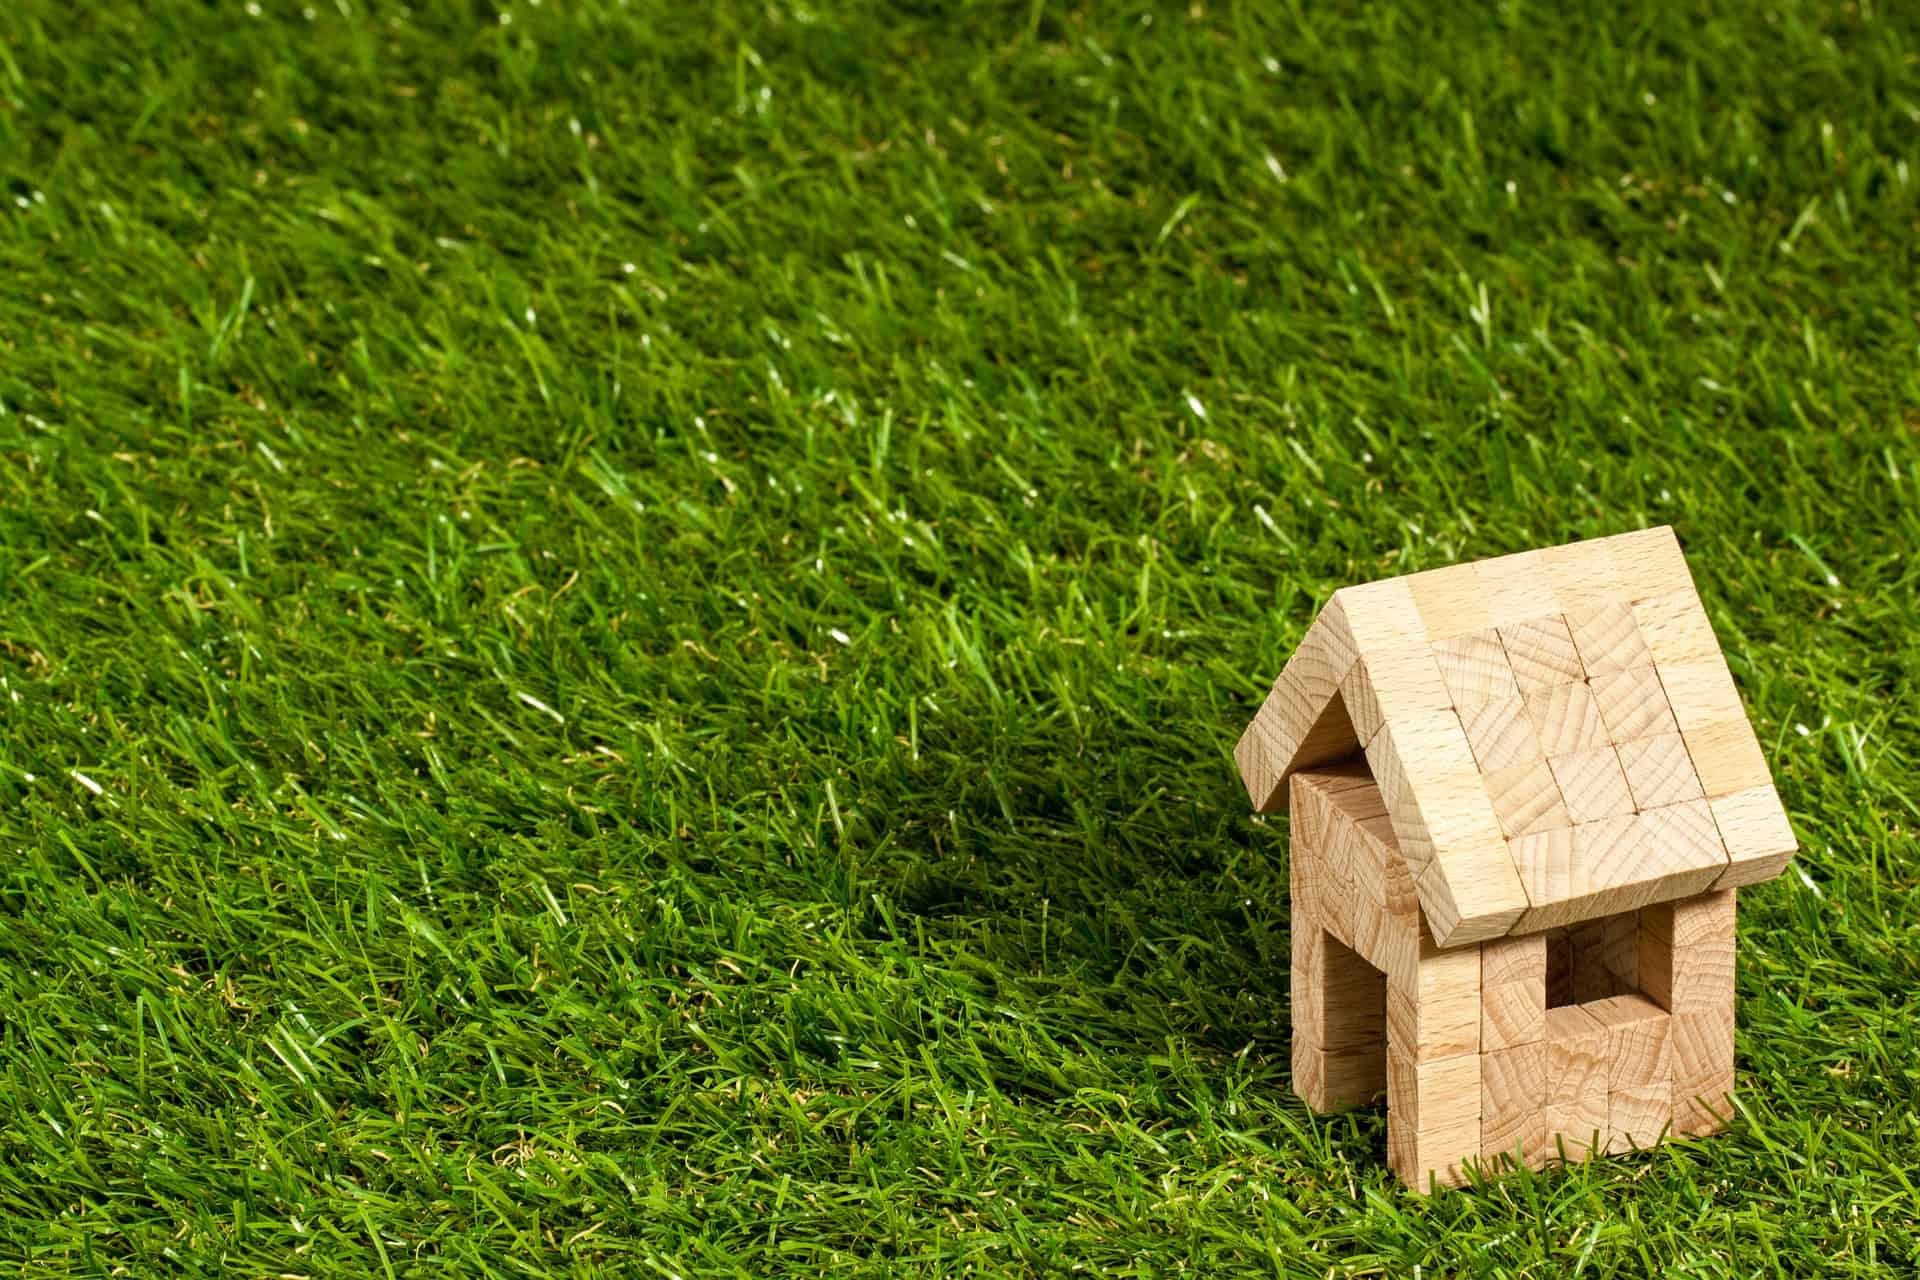 Small toy house made of little wooden cubes sitting on a lawn